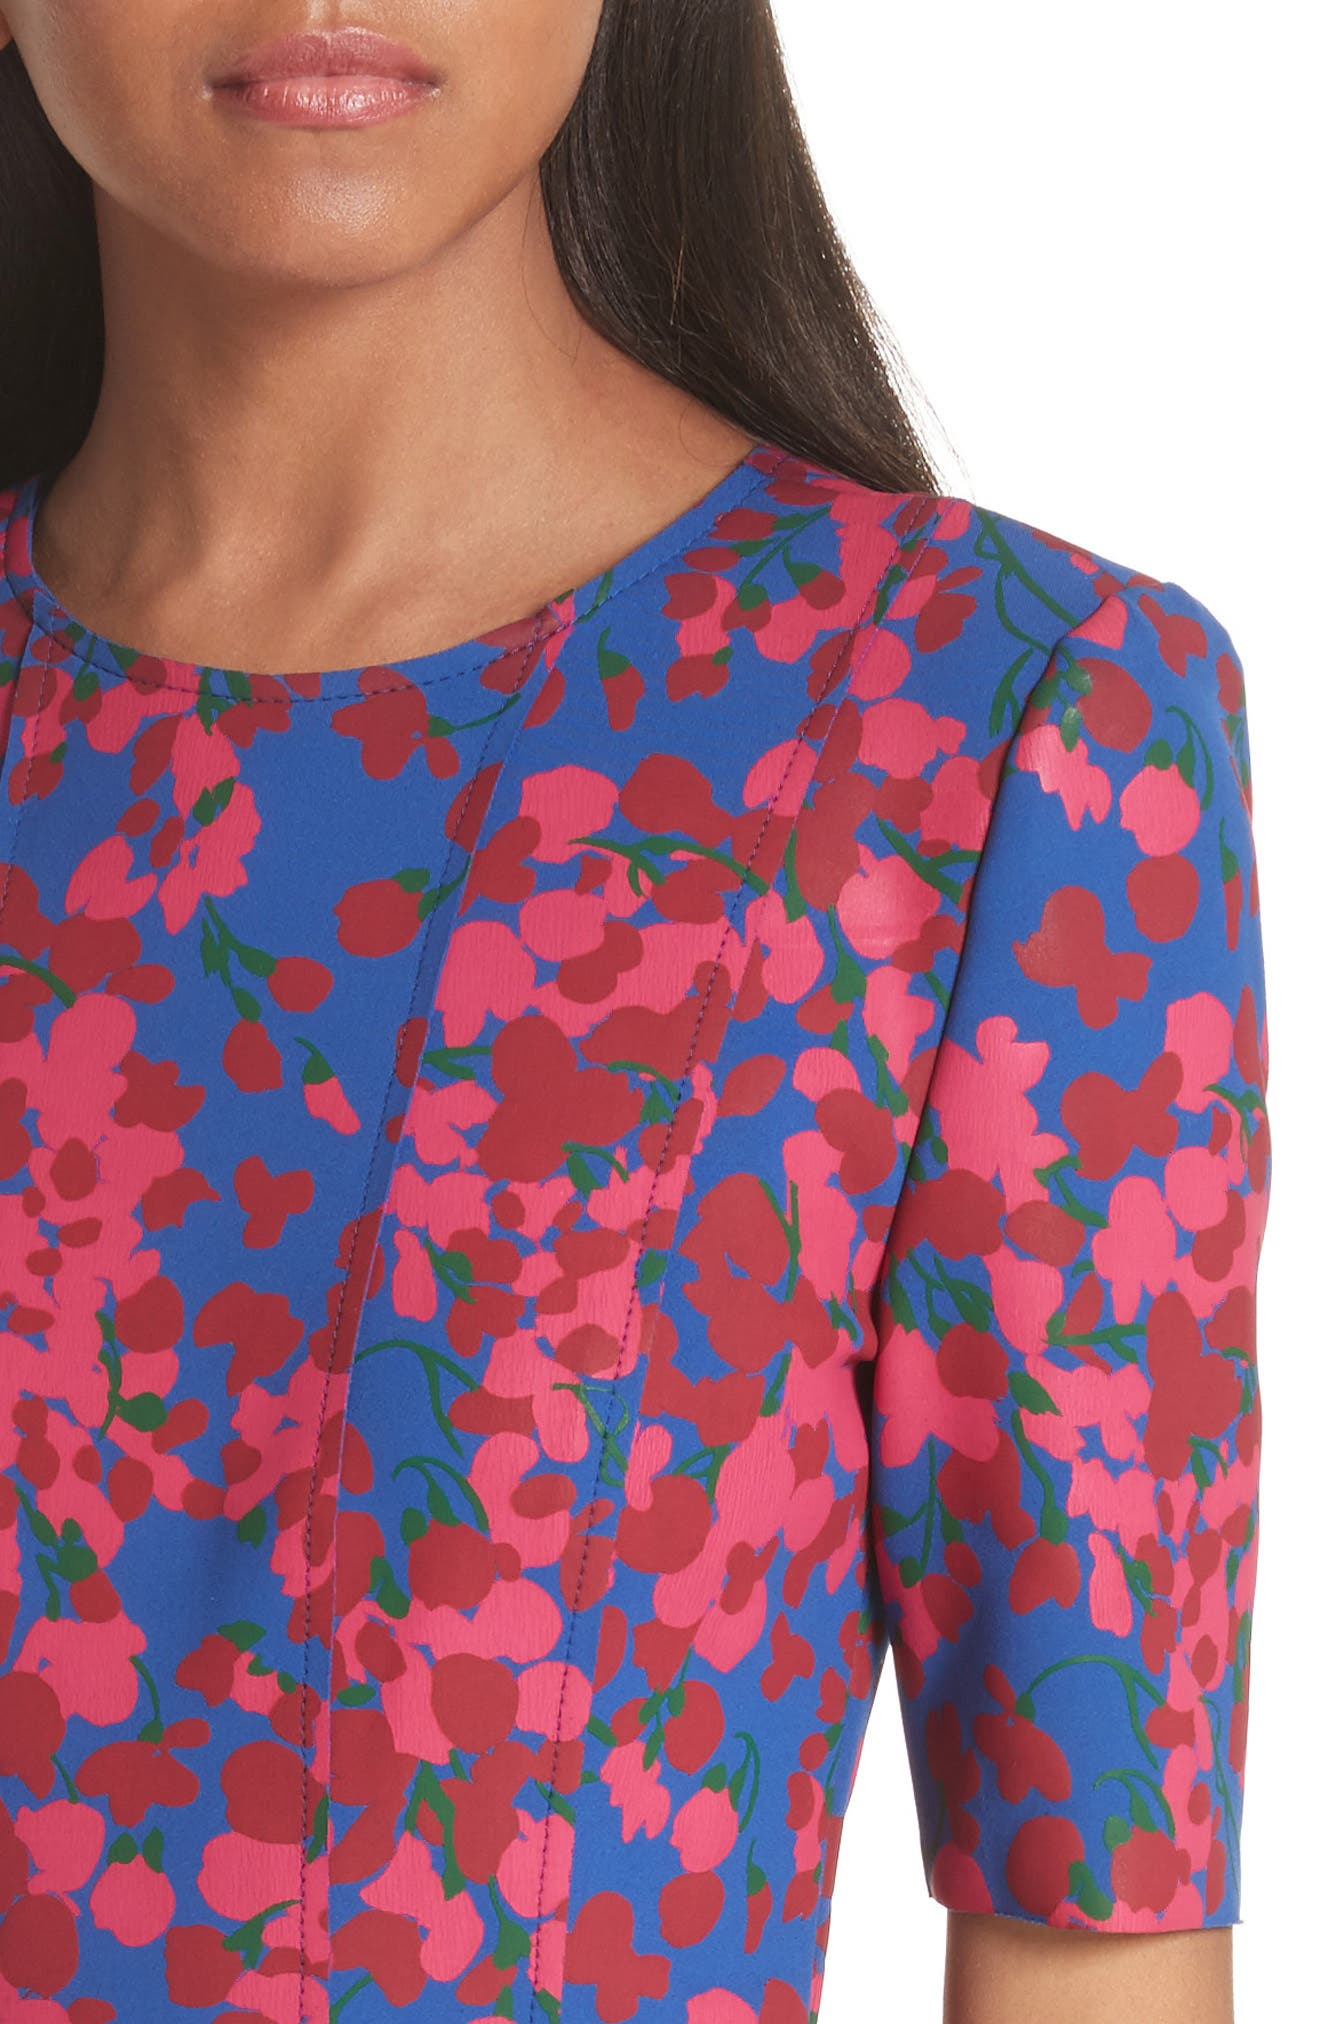 Knit Floral Print Dress,                             Alternate thumbnail 4, color,                             Persian Blue Multi